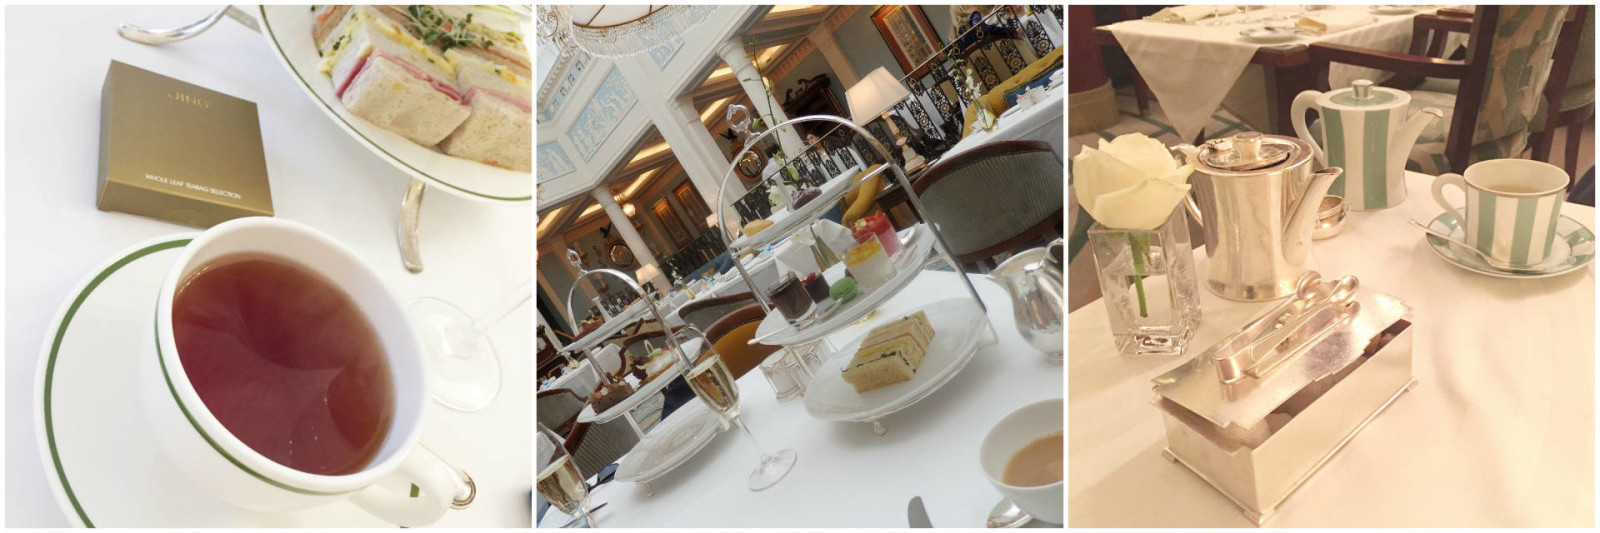 Where-Did-the-Wind-Blow-Me-and-a-few-other-reflections-My-2015-Review-Best-Gluten-Free-Afternoon-Tea